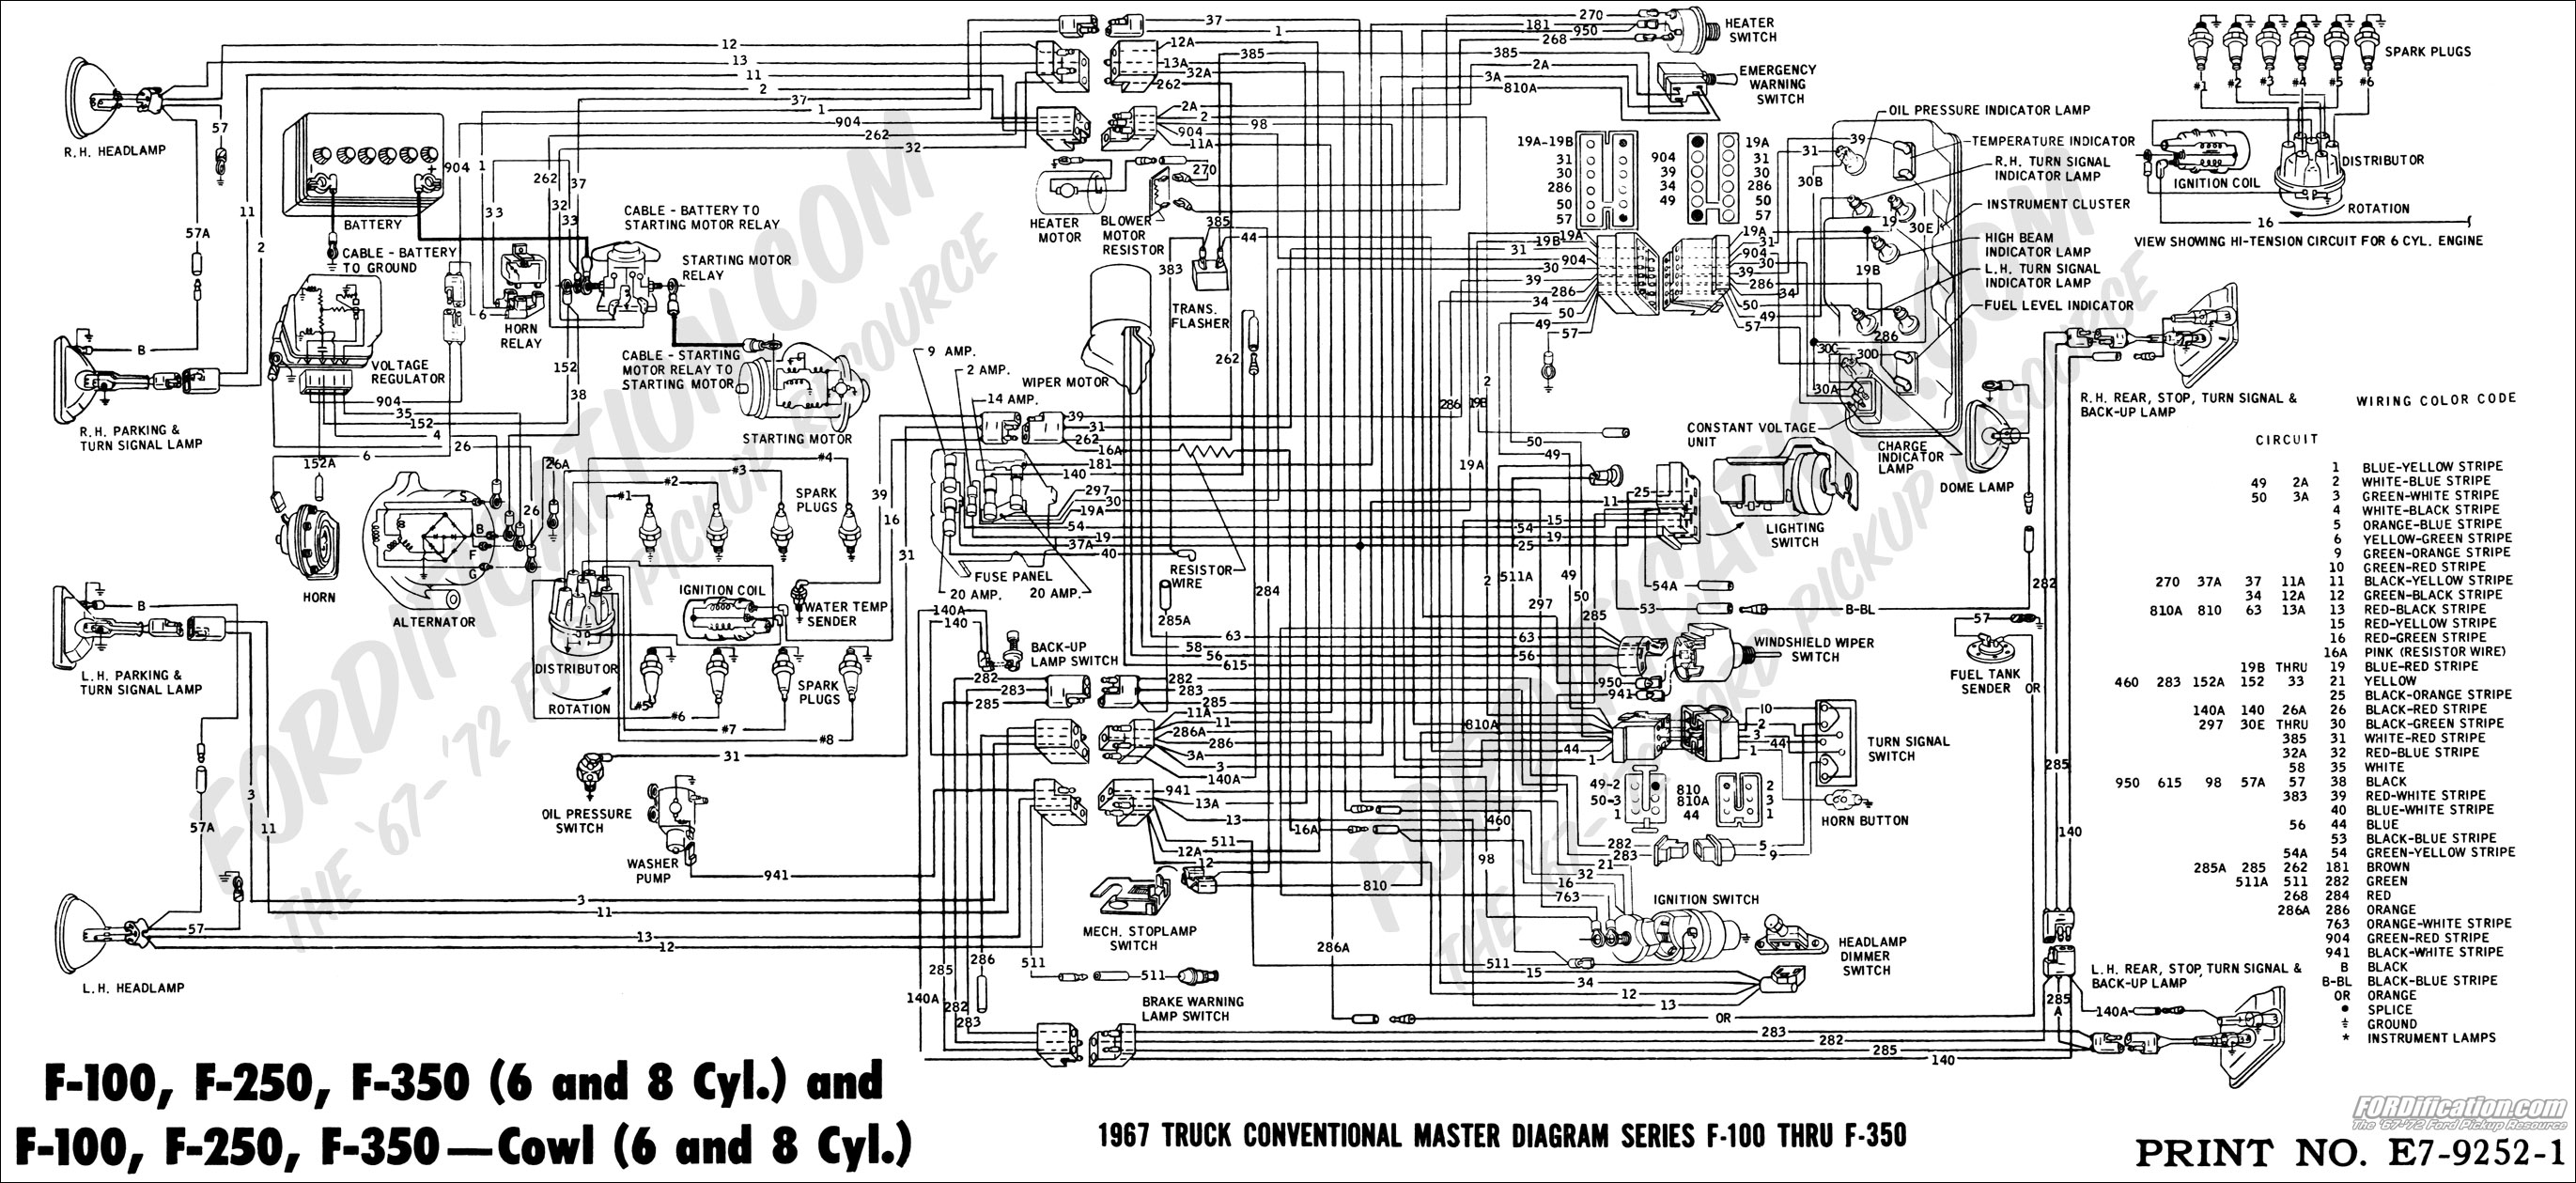 67masterdiagram 99 f150 wiring diagram 99 f150 stereo wiring diagram \u2022 wiring 1999 ford ranger xlt wiring diagrams at bayanpartner.co